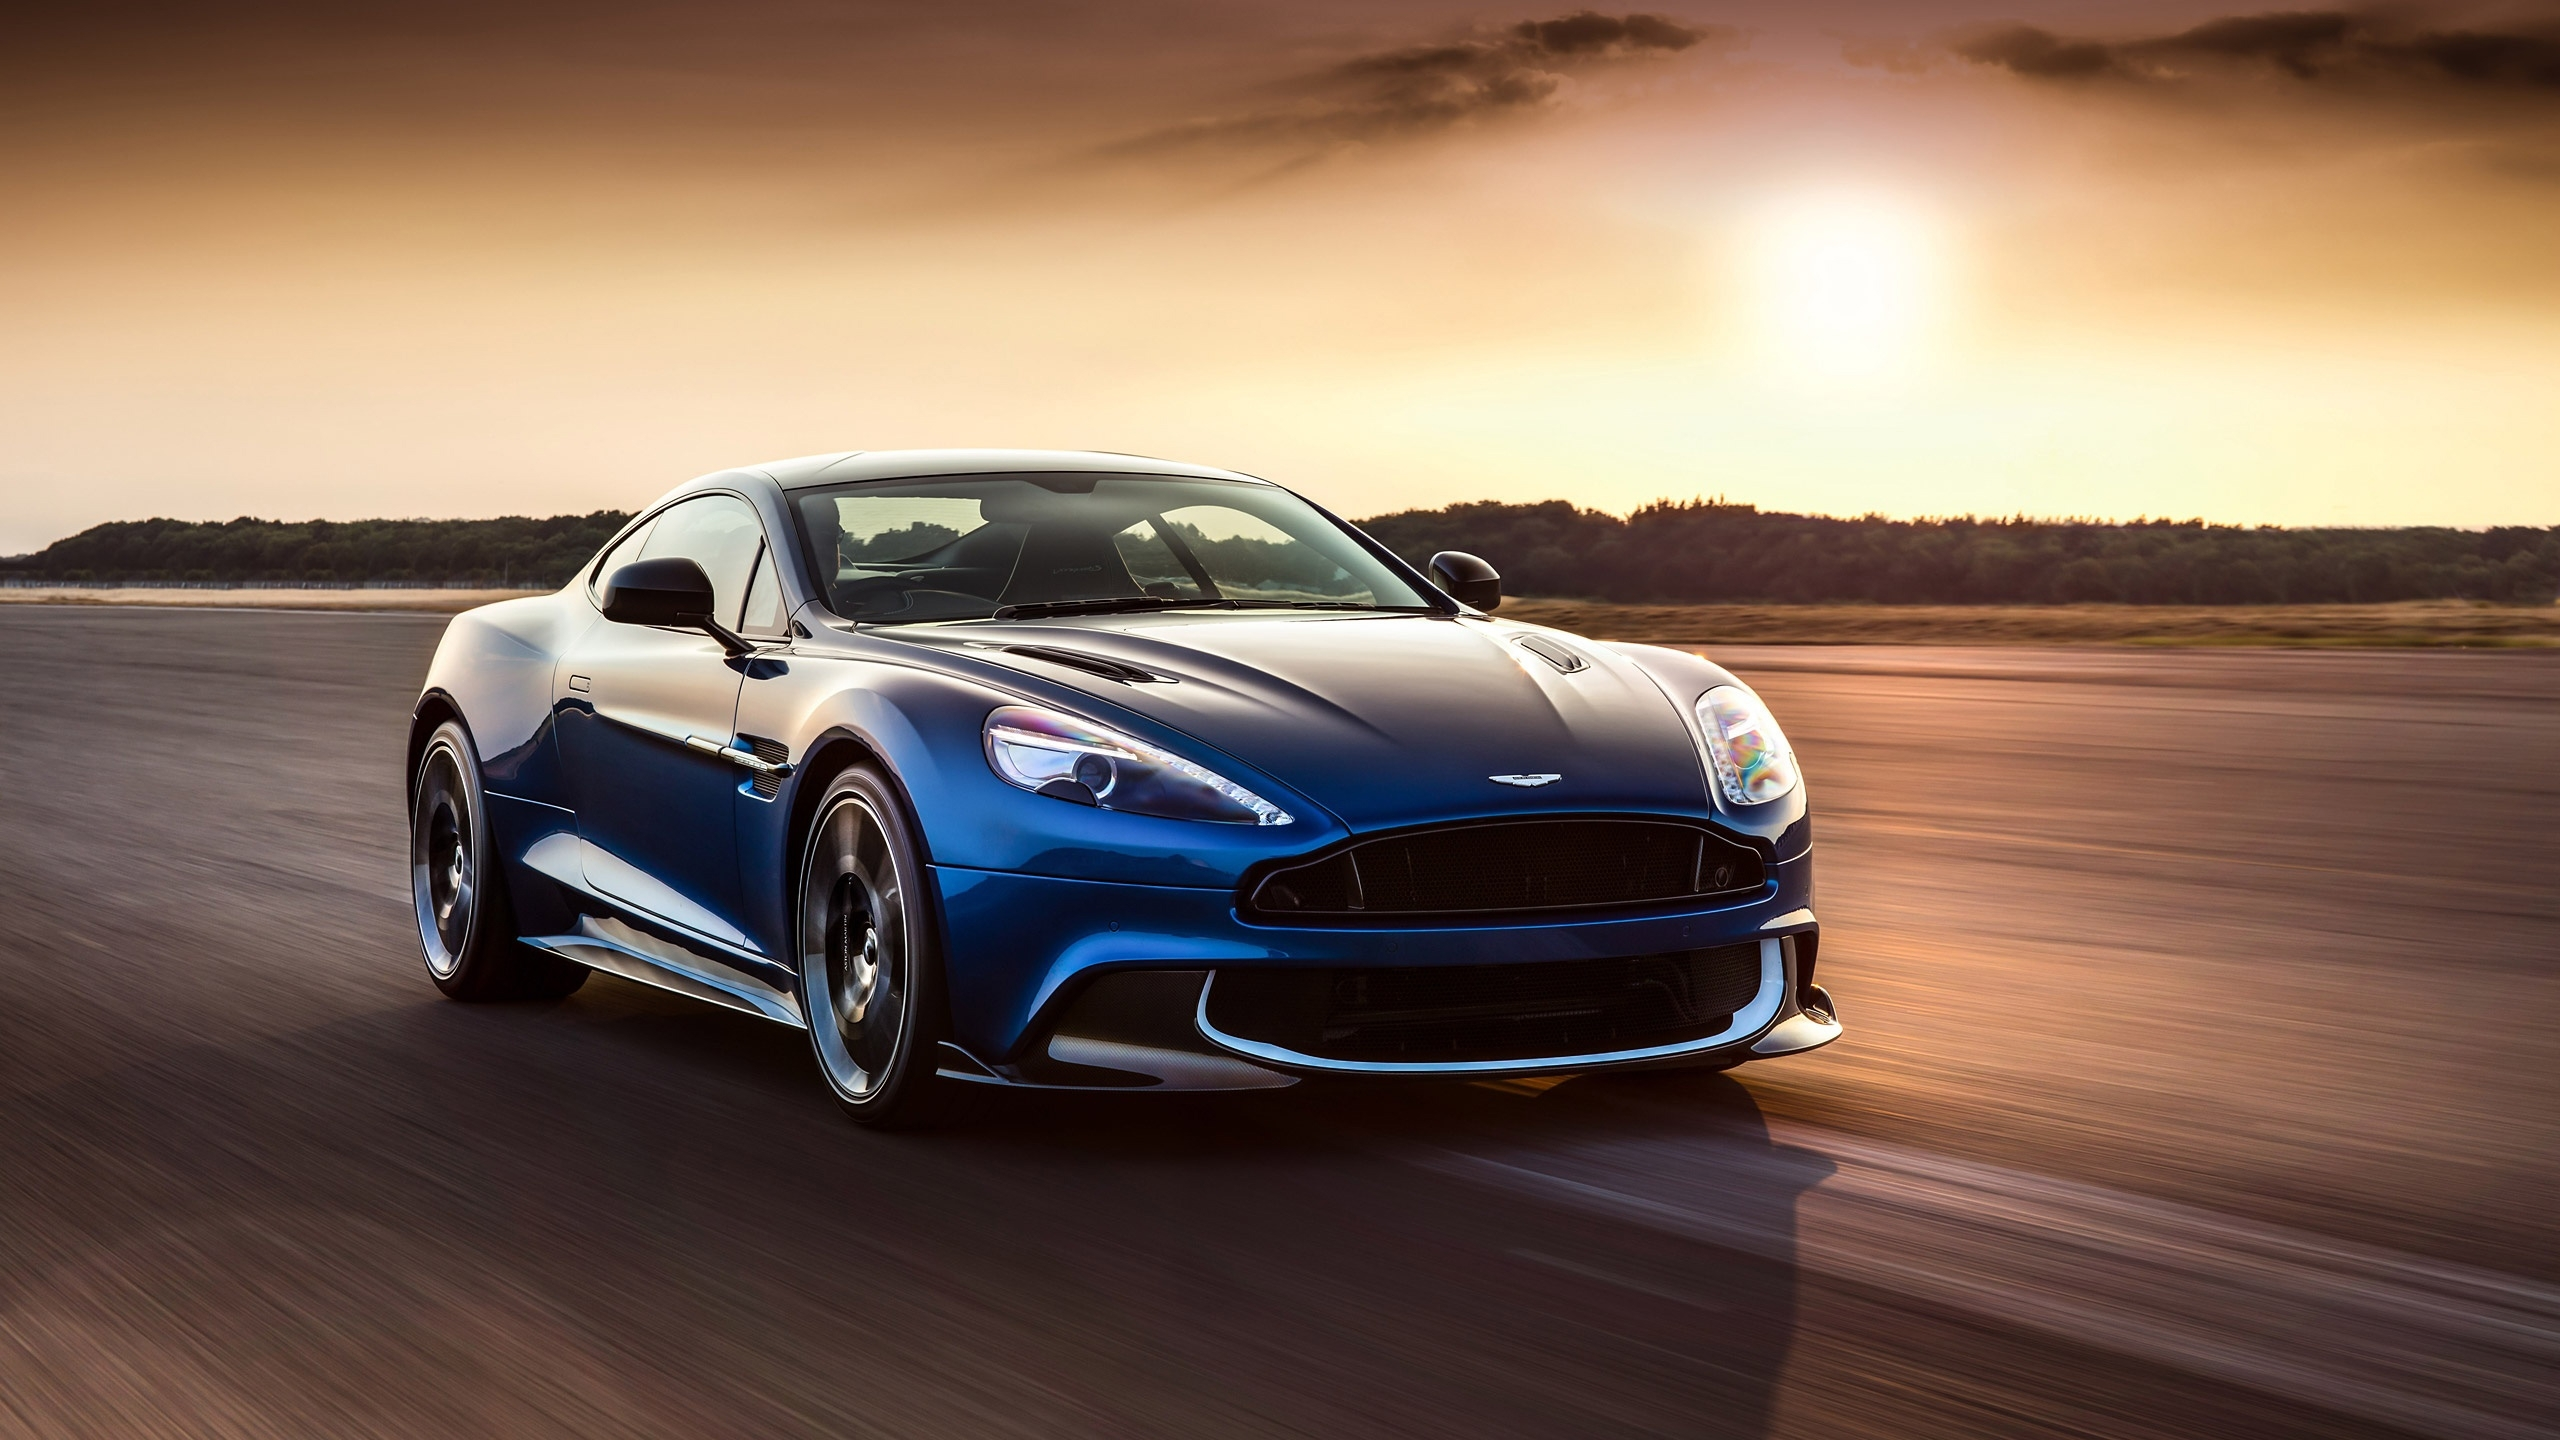 10 Latest Aston Martin Vanquish Wallpaper FULL HD 1080p For PC Background